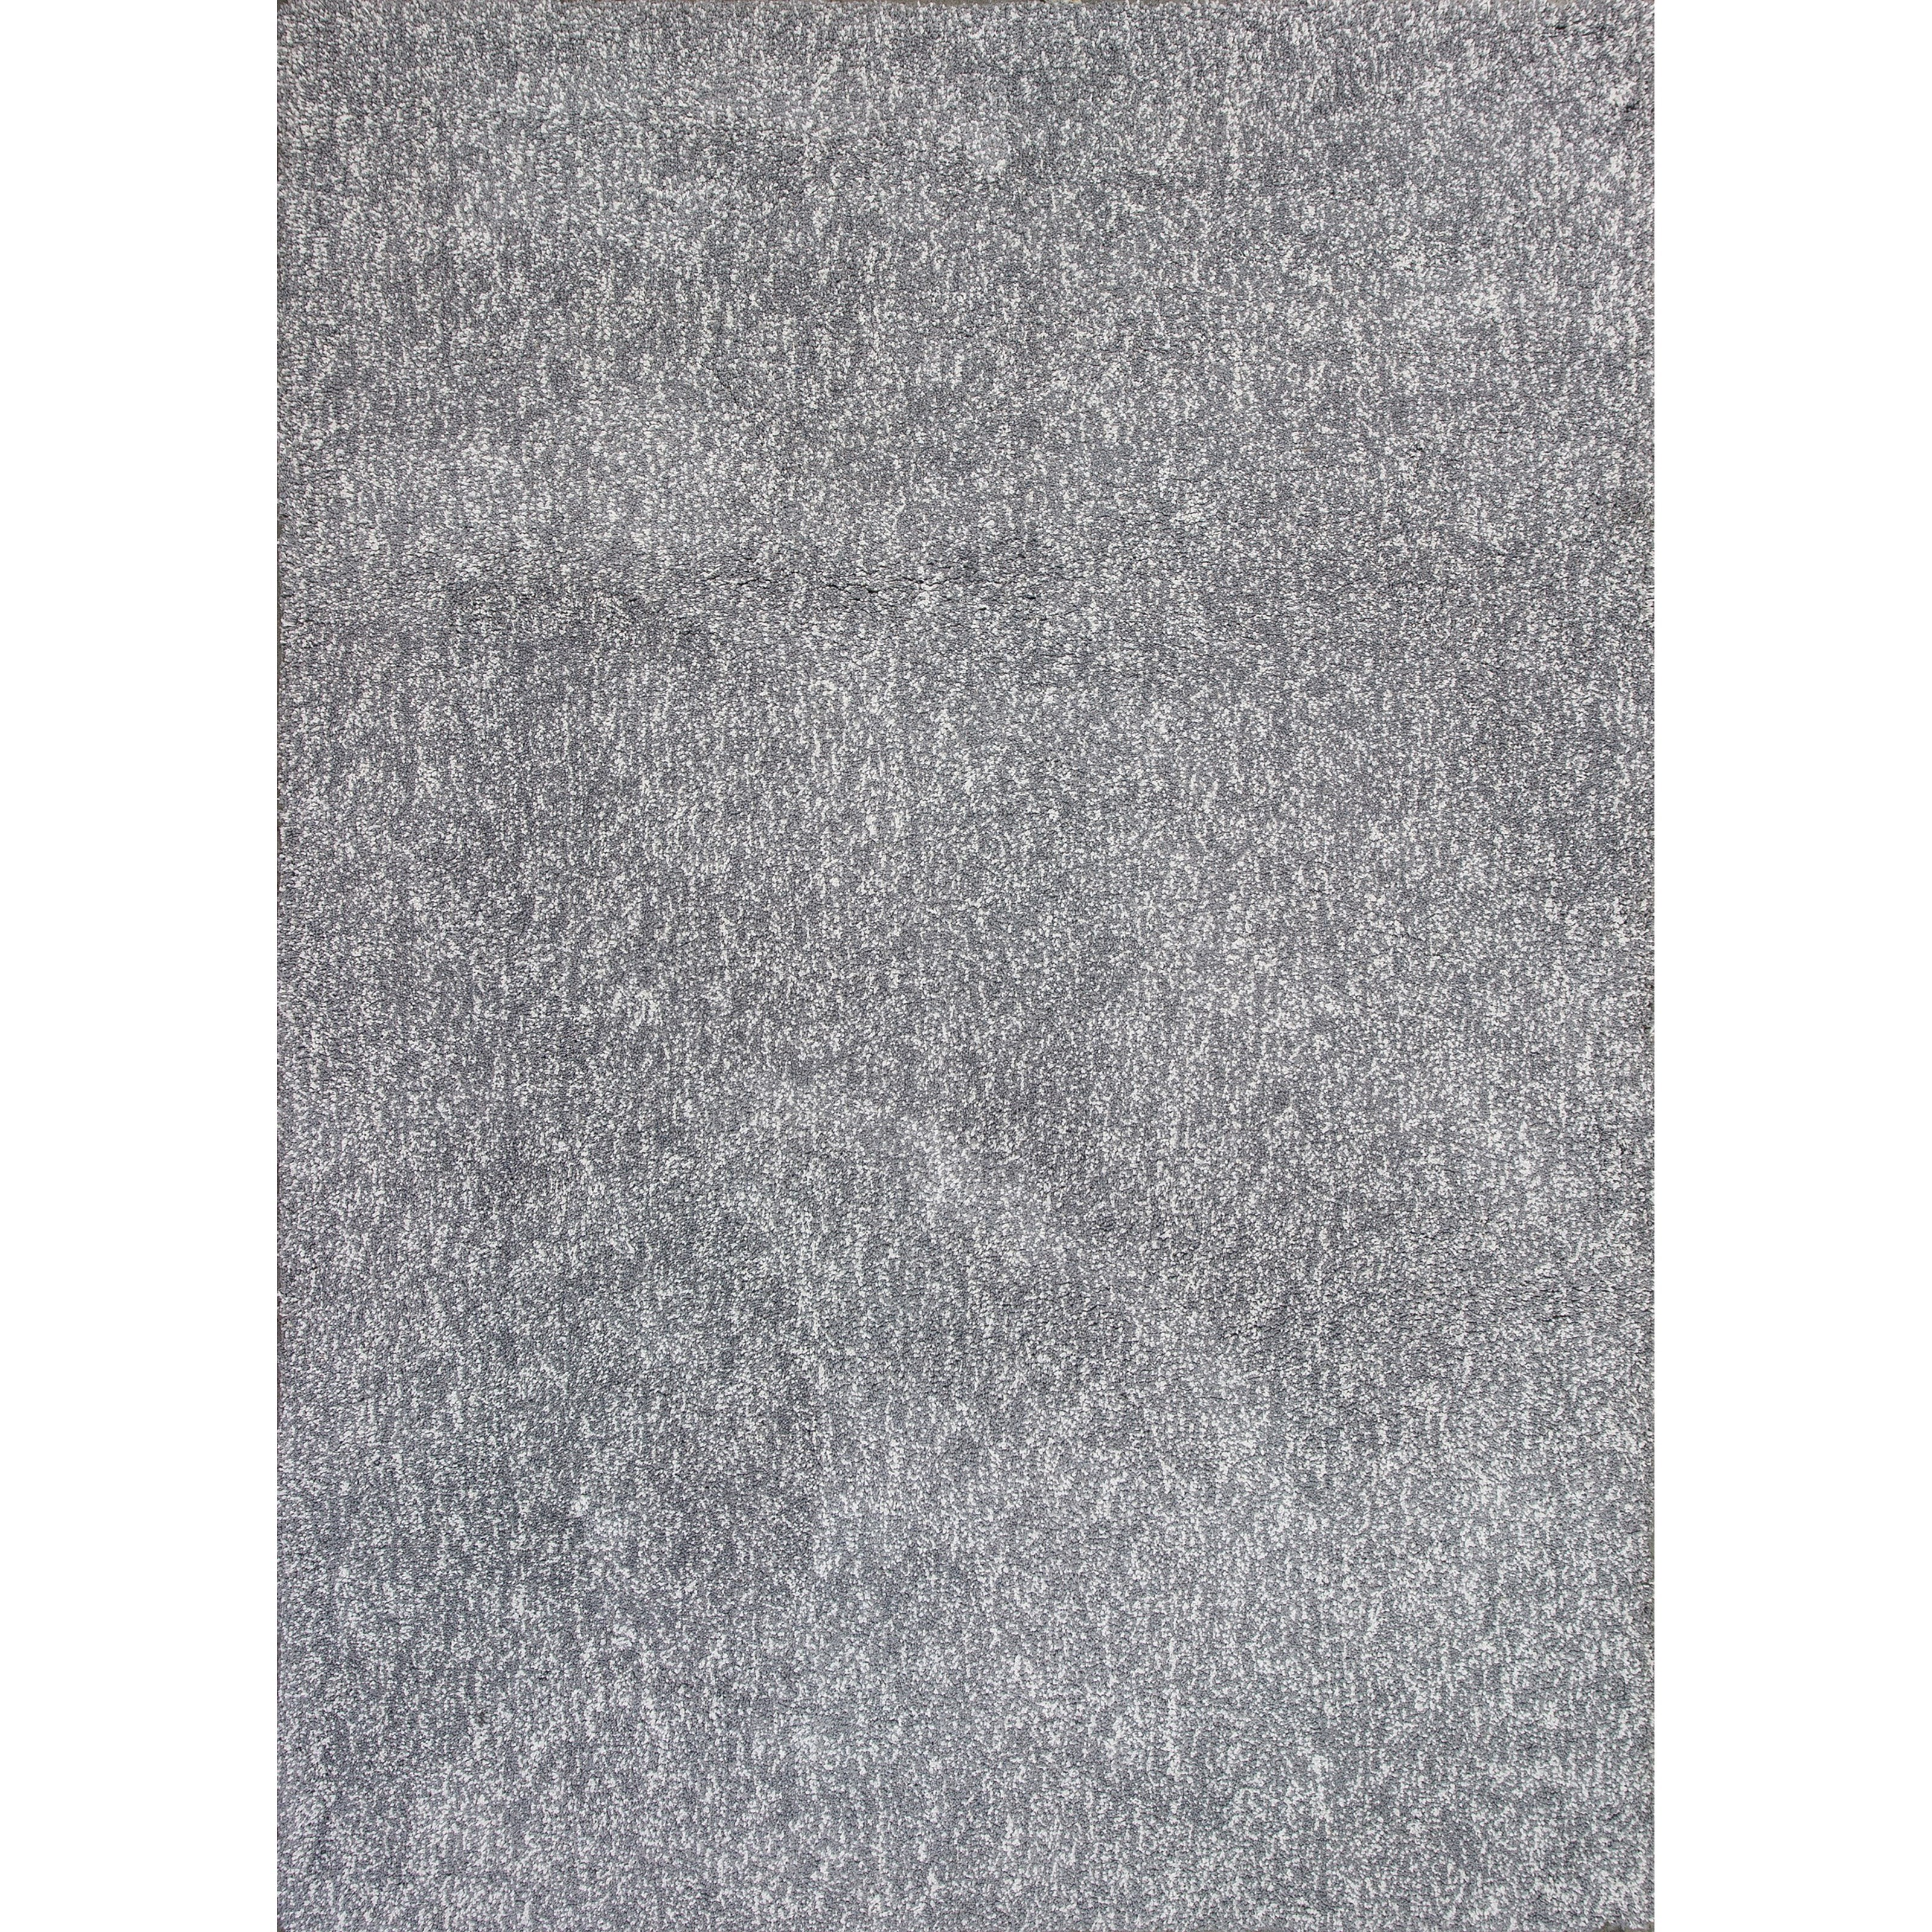 Bliss 5' X 7' Grey Heather Shag Area Rug by Kas at Darvin Furniture